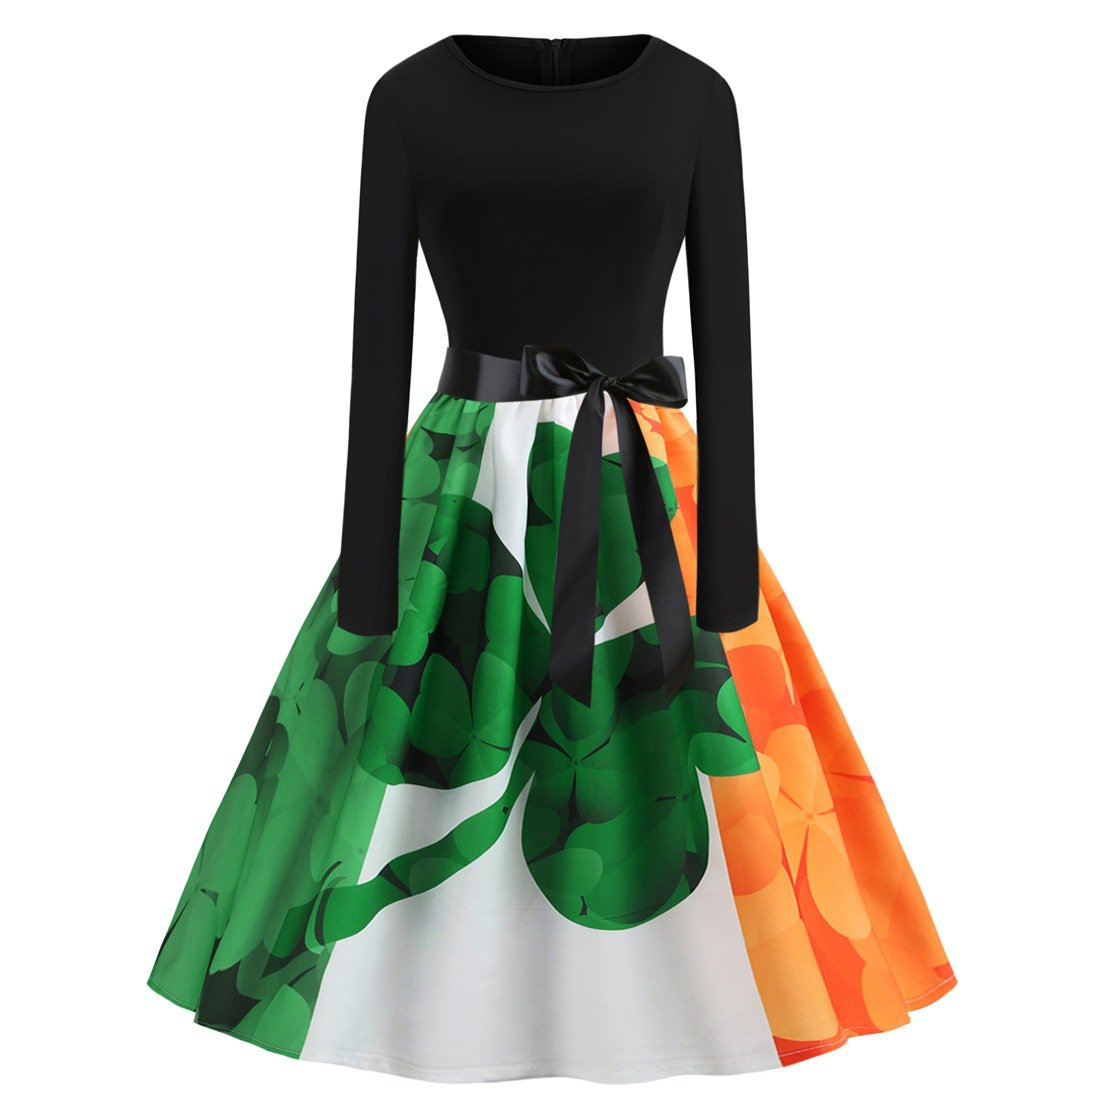 St. Patrick's Day Vintage Ireland Flag Casual Dress Retro Party Dresses Shamrocks Fashion Apparel